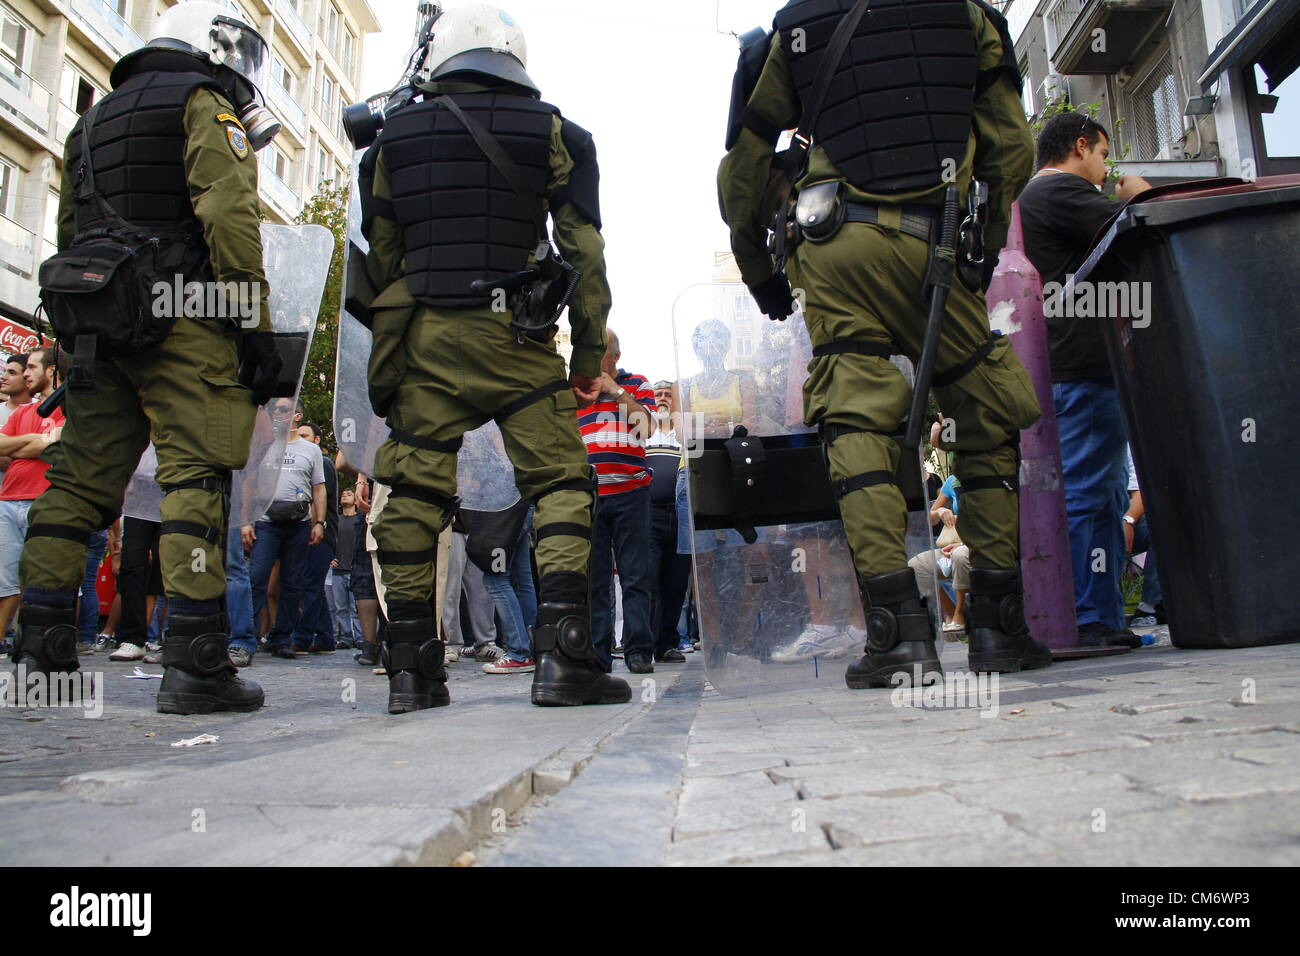 Clashes during union protest, Greece, Athens, 18th October 2012 - Stock Image